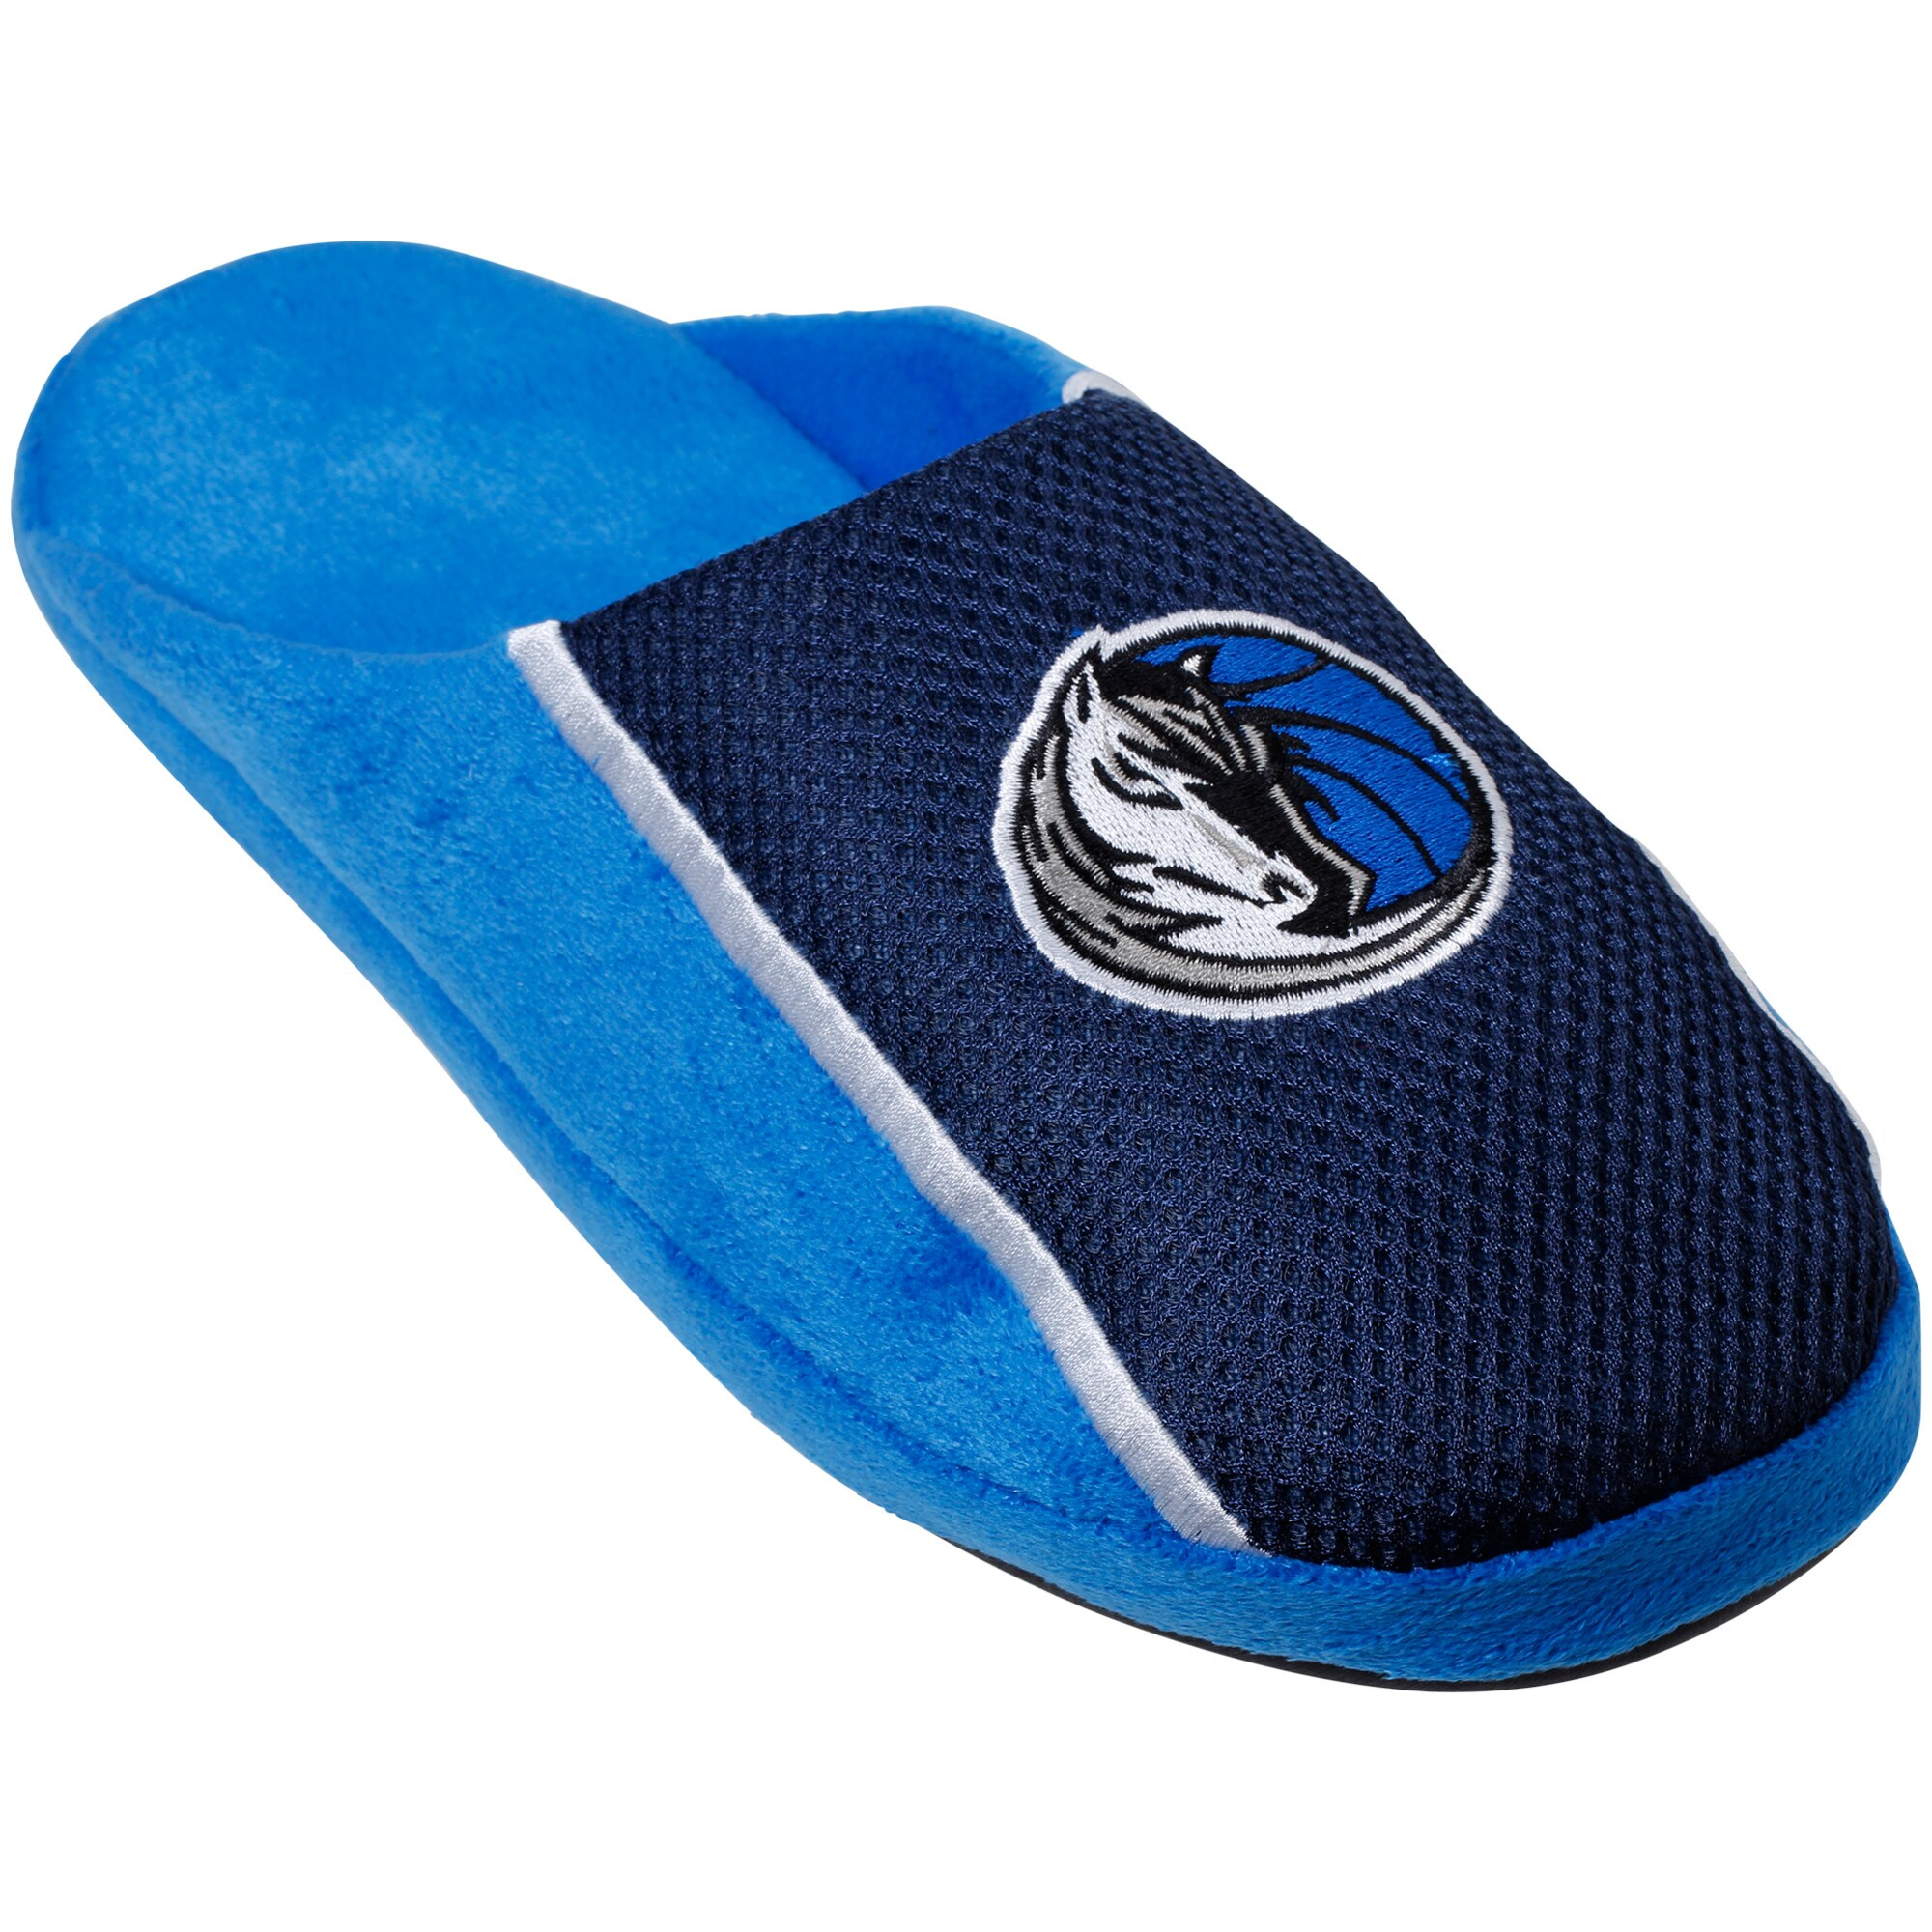 Dallas Mavericks Jersey Slide Slippers